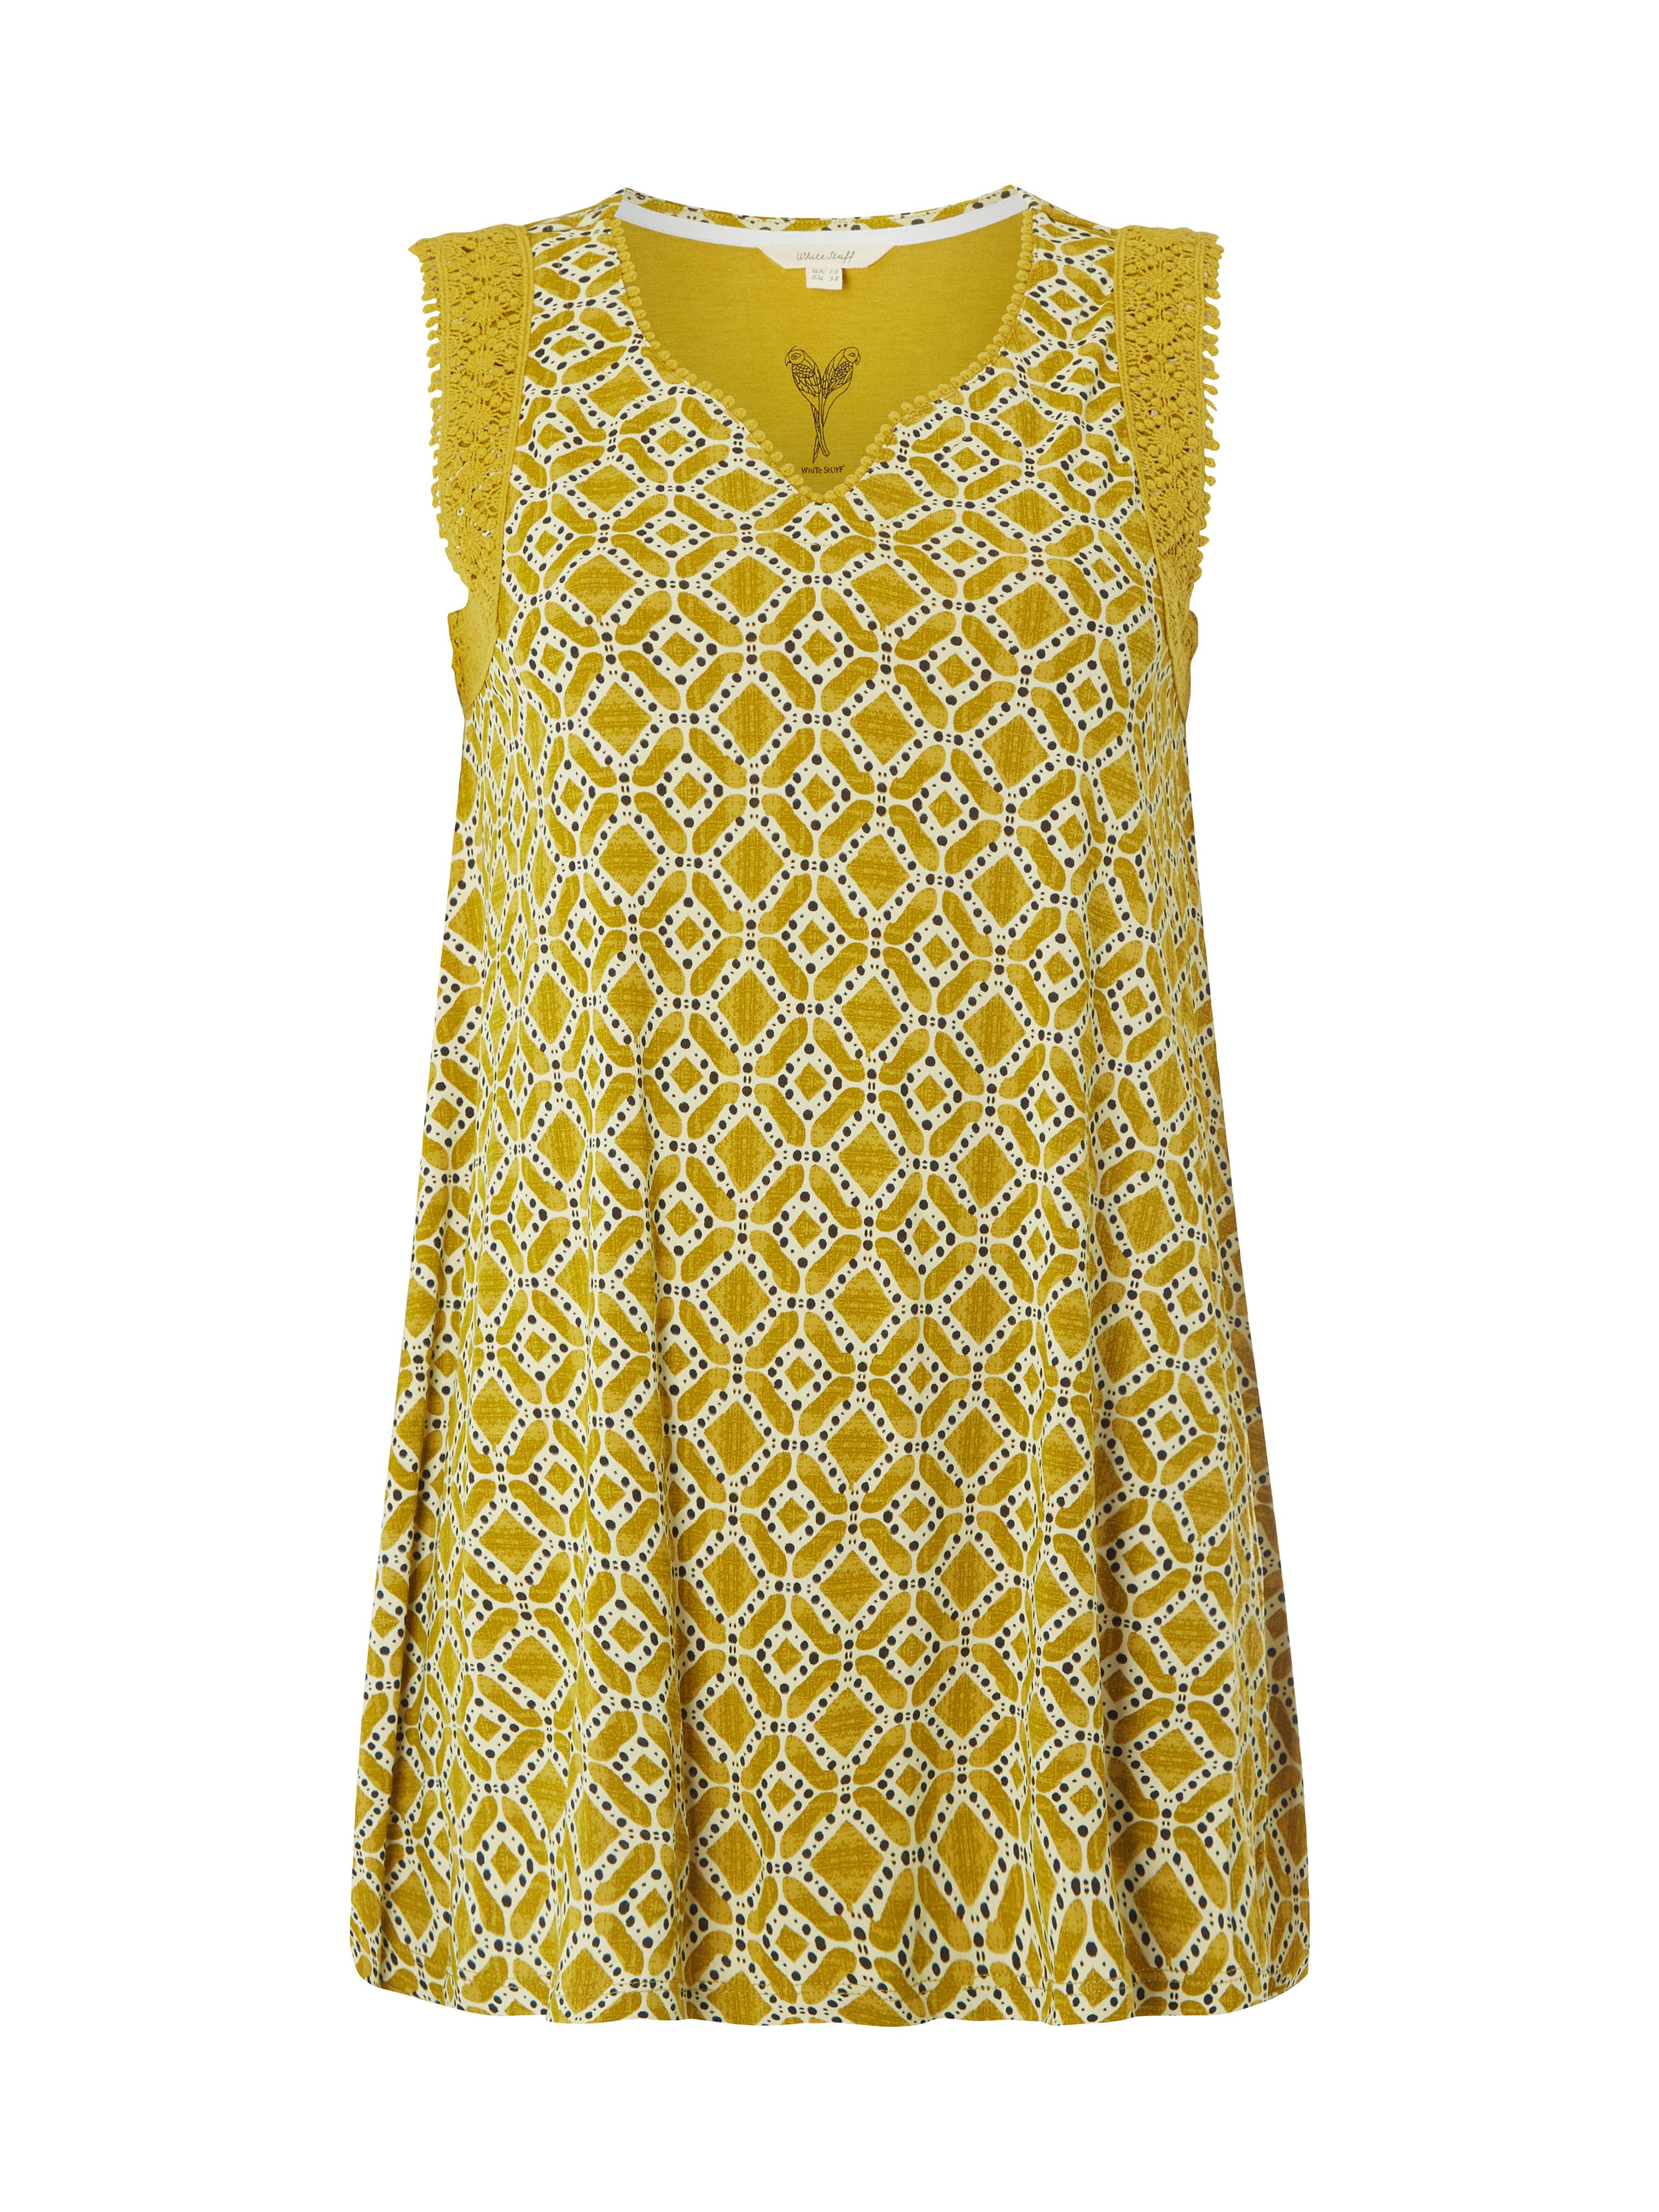 White Stuff Tile Print Jersey Tunic, Yellow